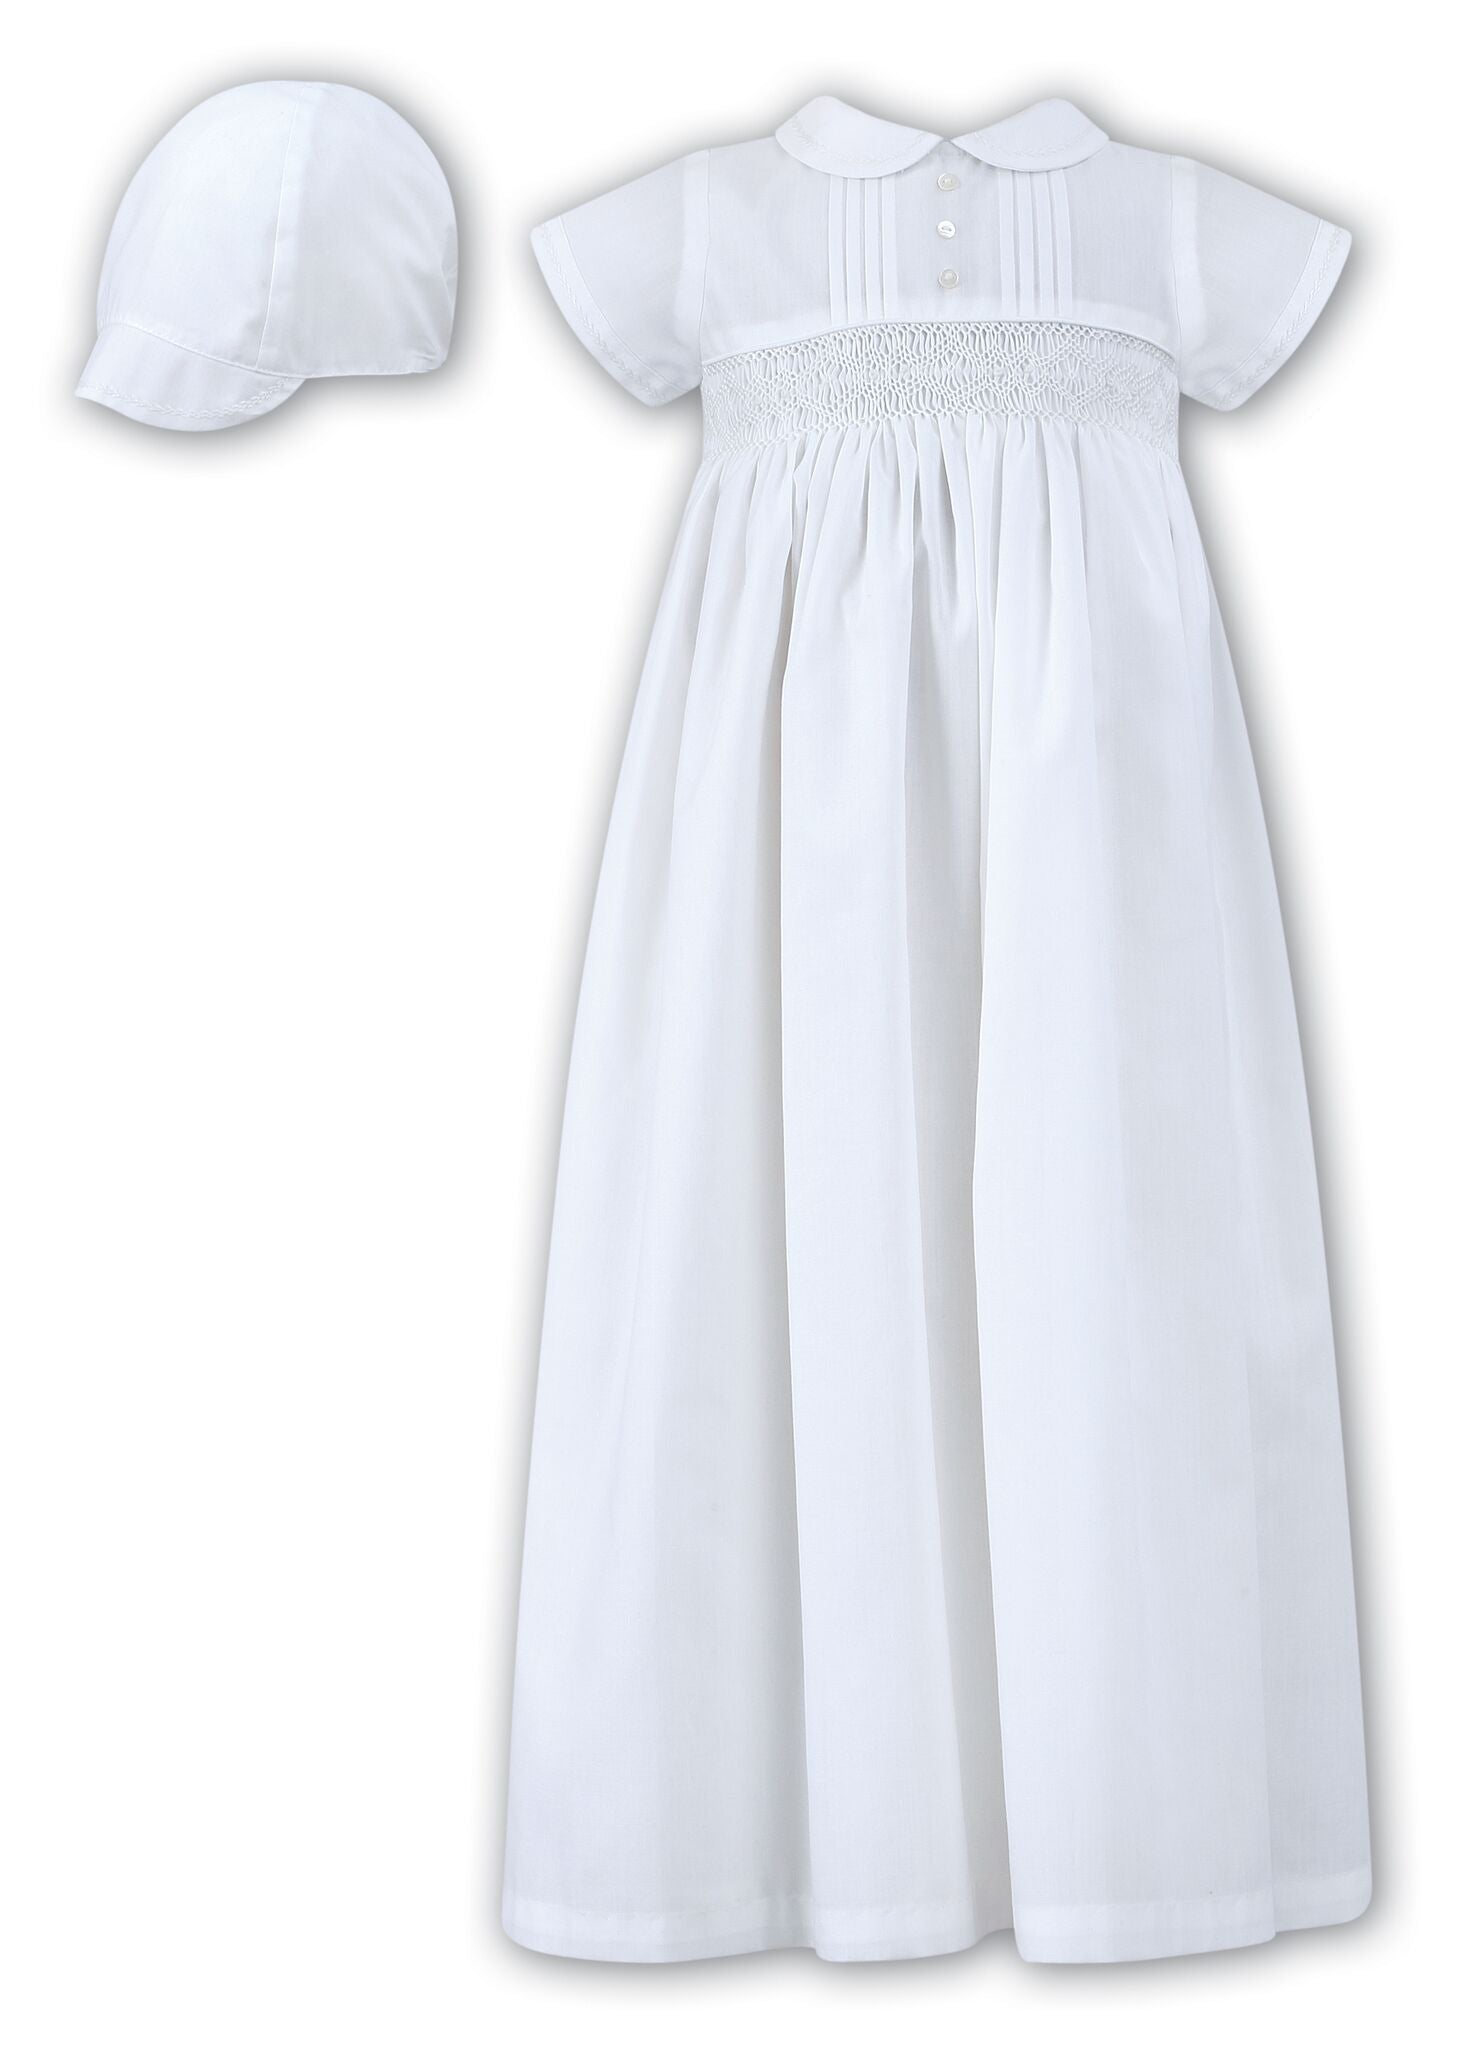 Sarah Louise heirloom poly cotton smocked Christening Robe